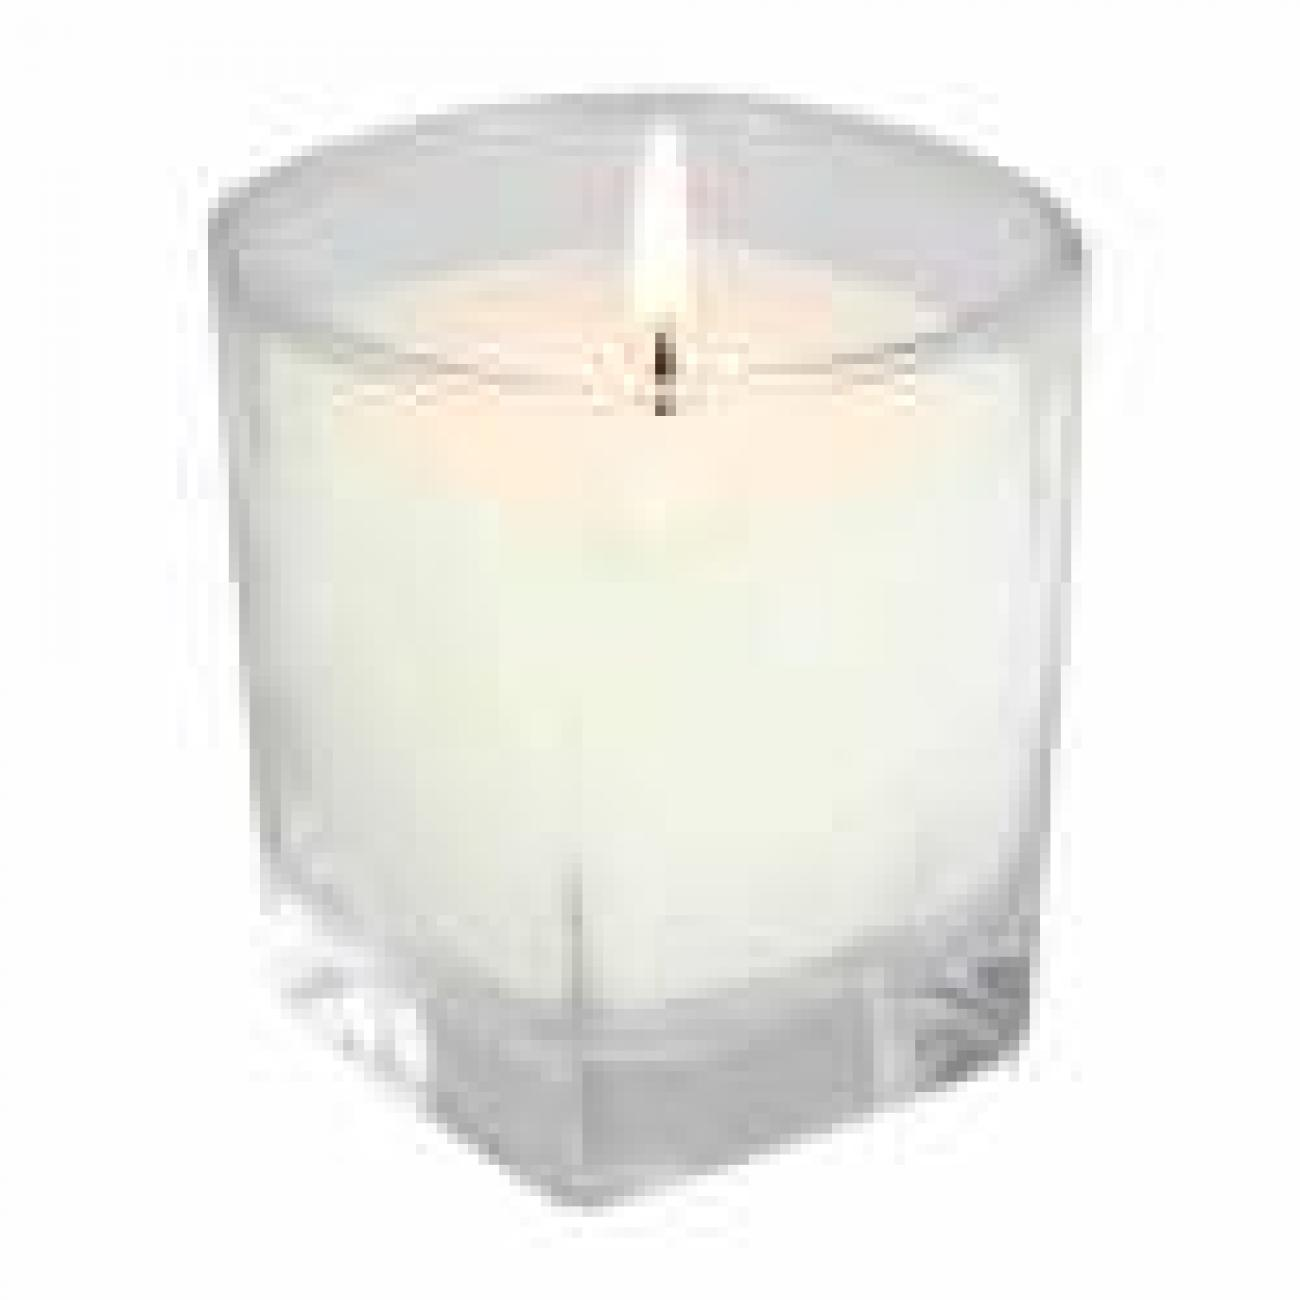 fancy_Glass_Candles_(1)